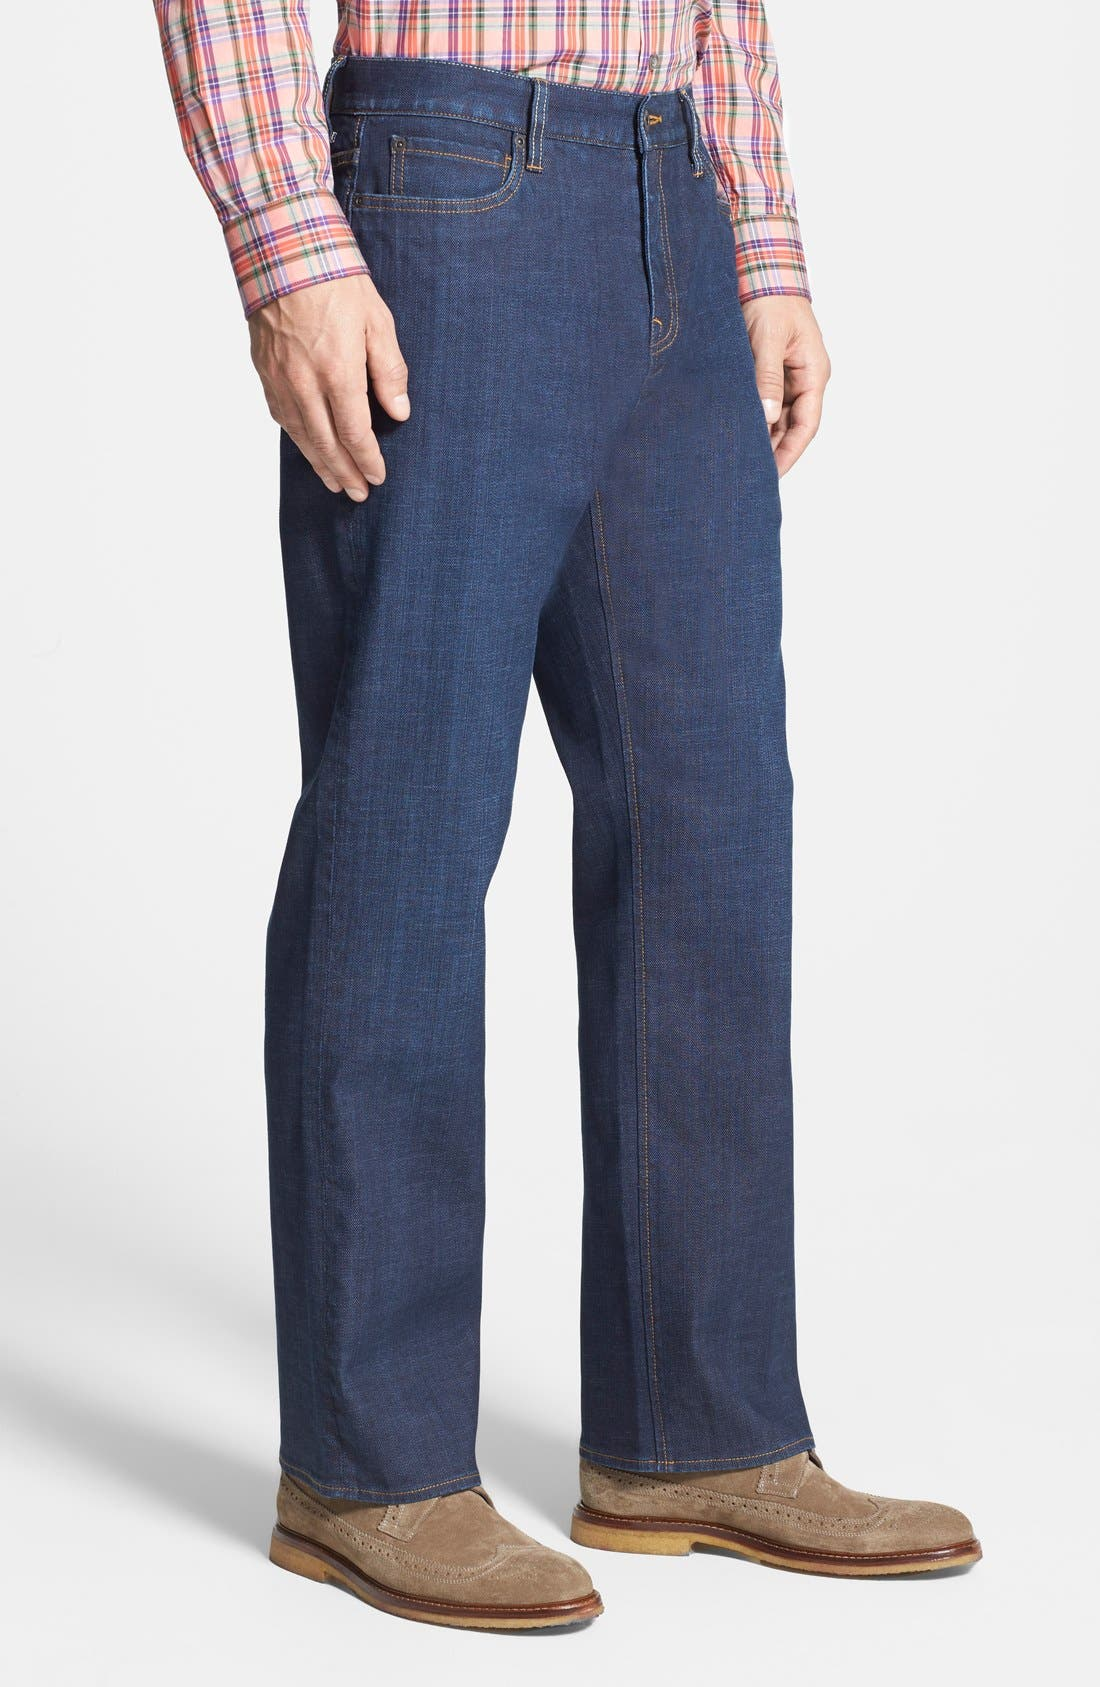 Greenwood Relaxed Fit Jeans,                             Alternate thumbnail 8, color,